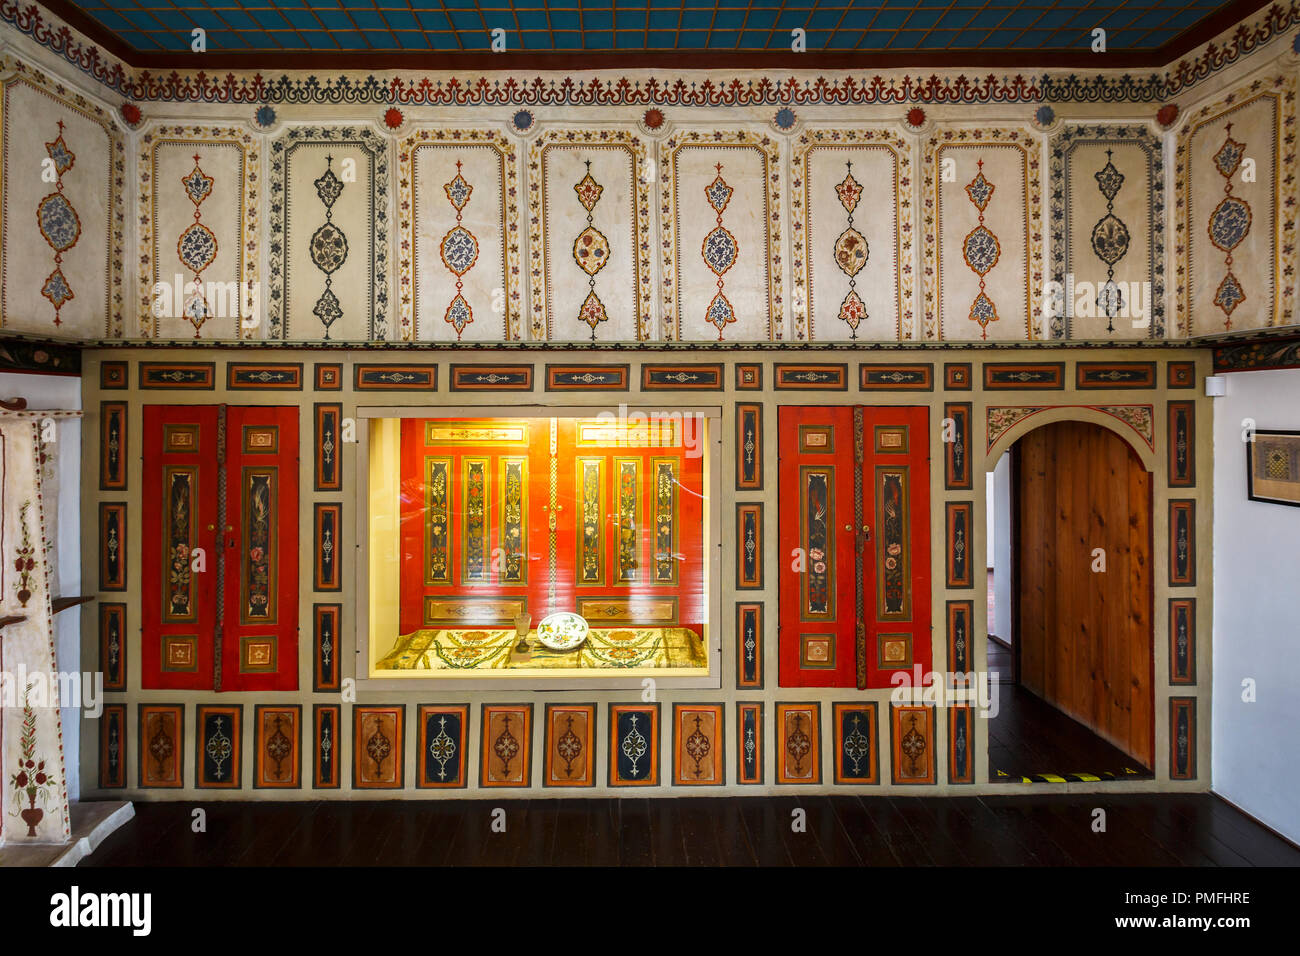 Kosice, Slovakia - August 11, 2018: Reconstruction of a house with original interior of the dining room from Rakoczi's exile house in Turkey. - Stock Image